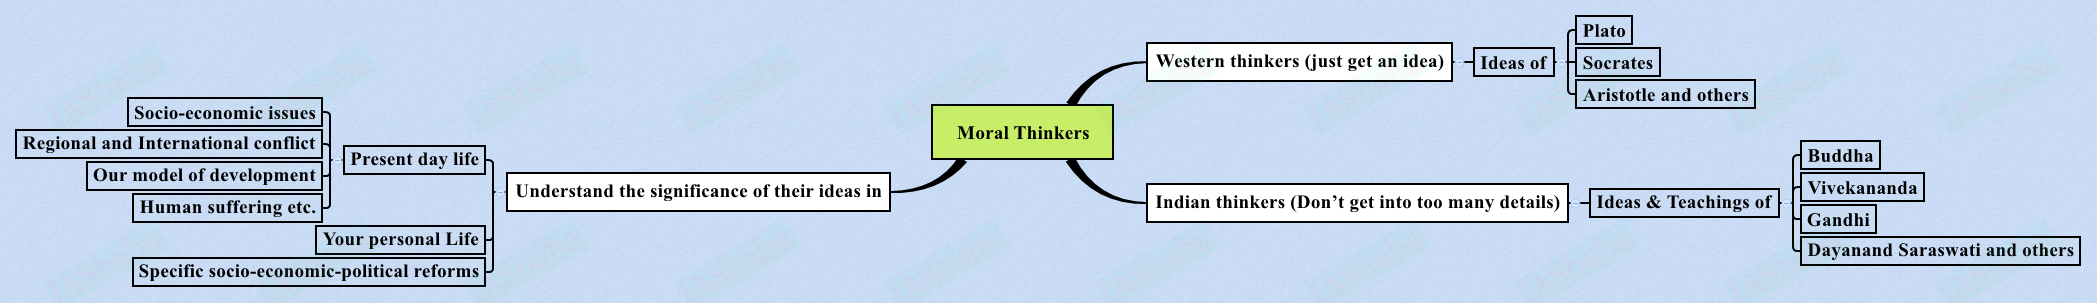 Moral-Thinkers